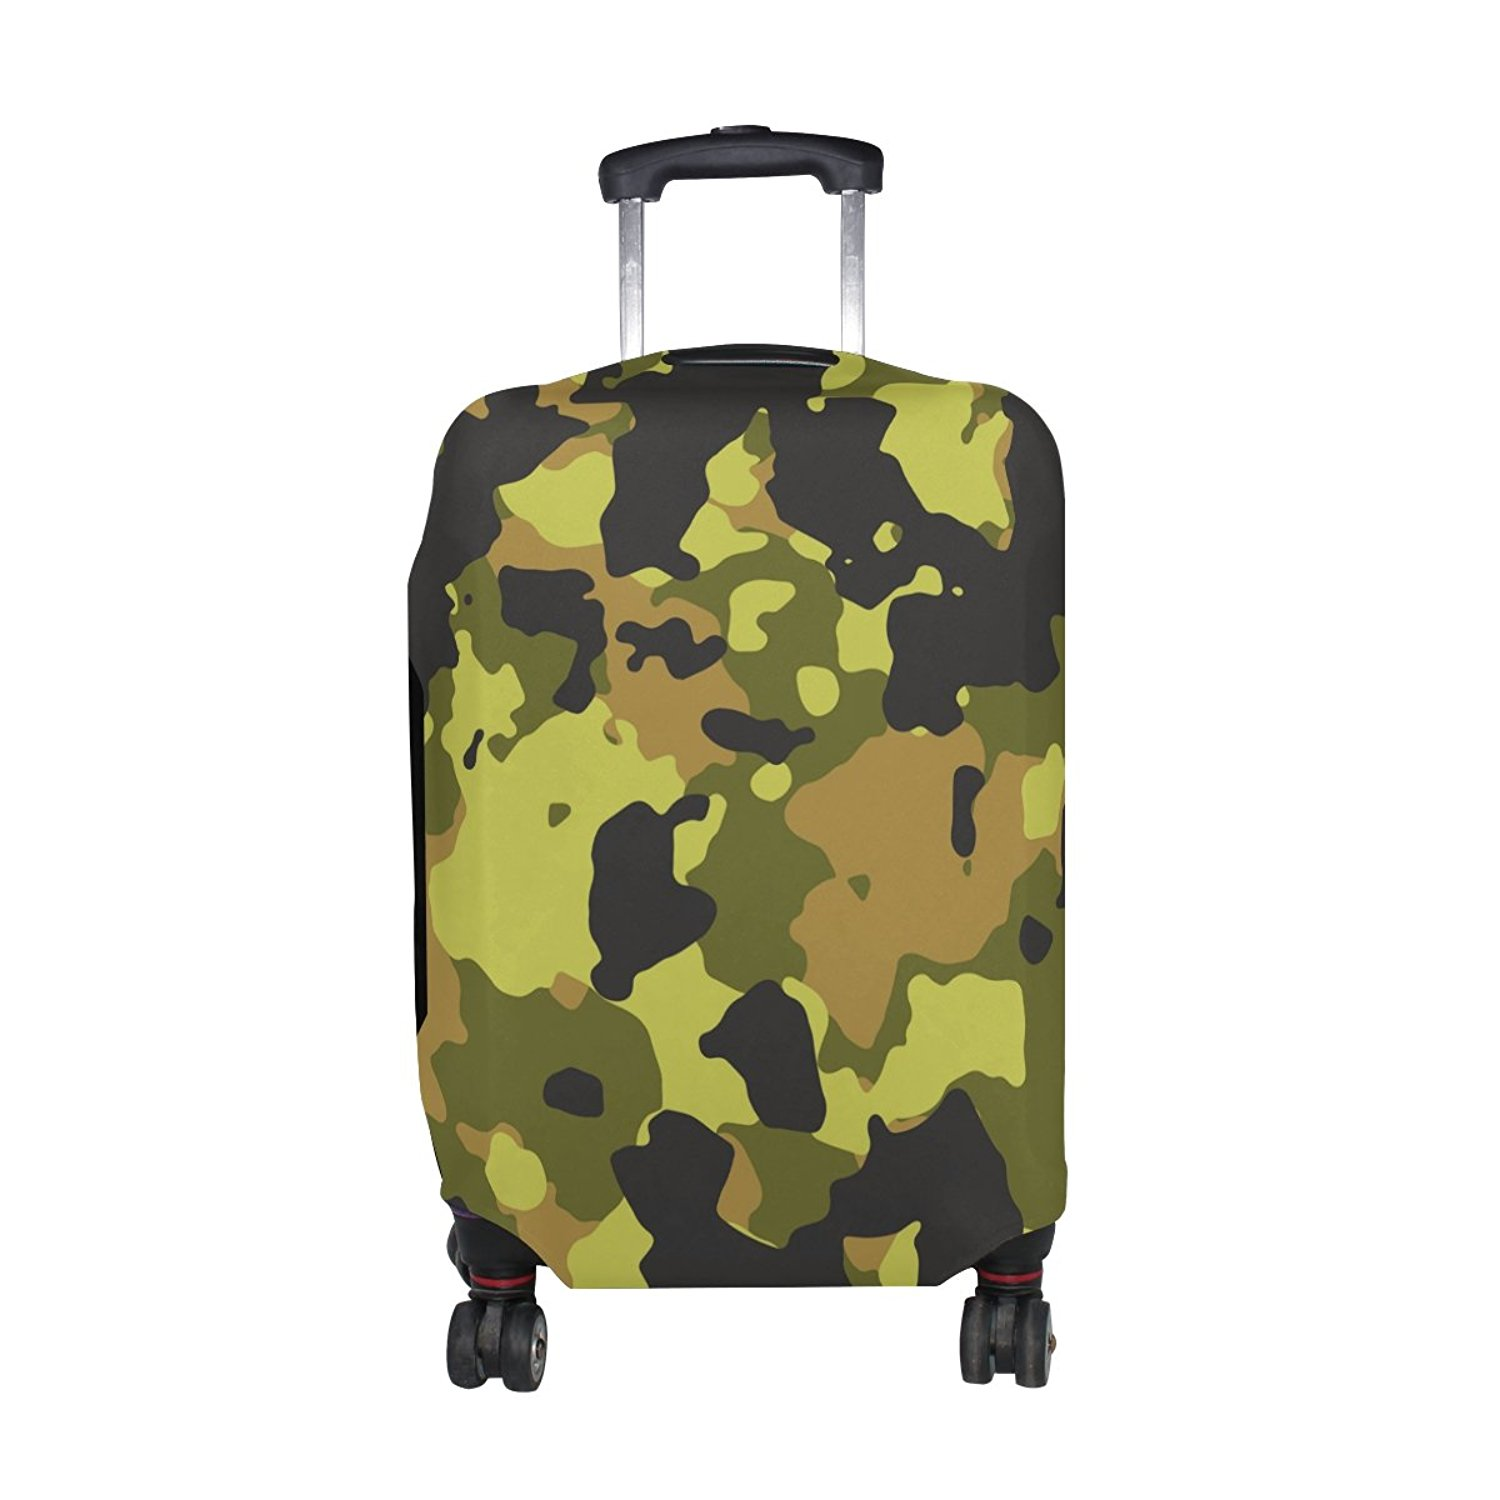 8f58d012e0dd Get Quotations · Military Camo Camouflage Pattern Print Travel Luggage  Protector Baggage Suitcase Cover Fits 23-26 Inch